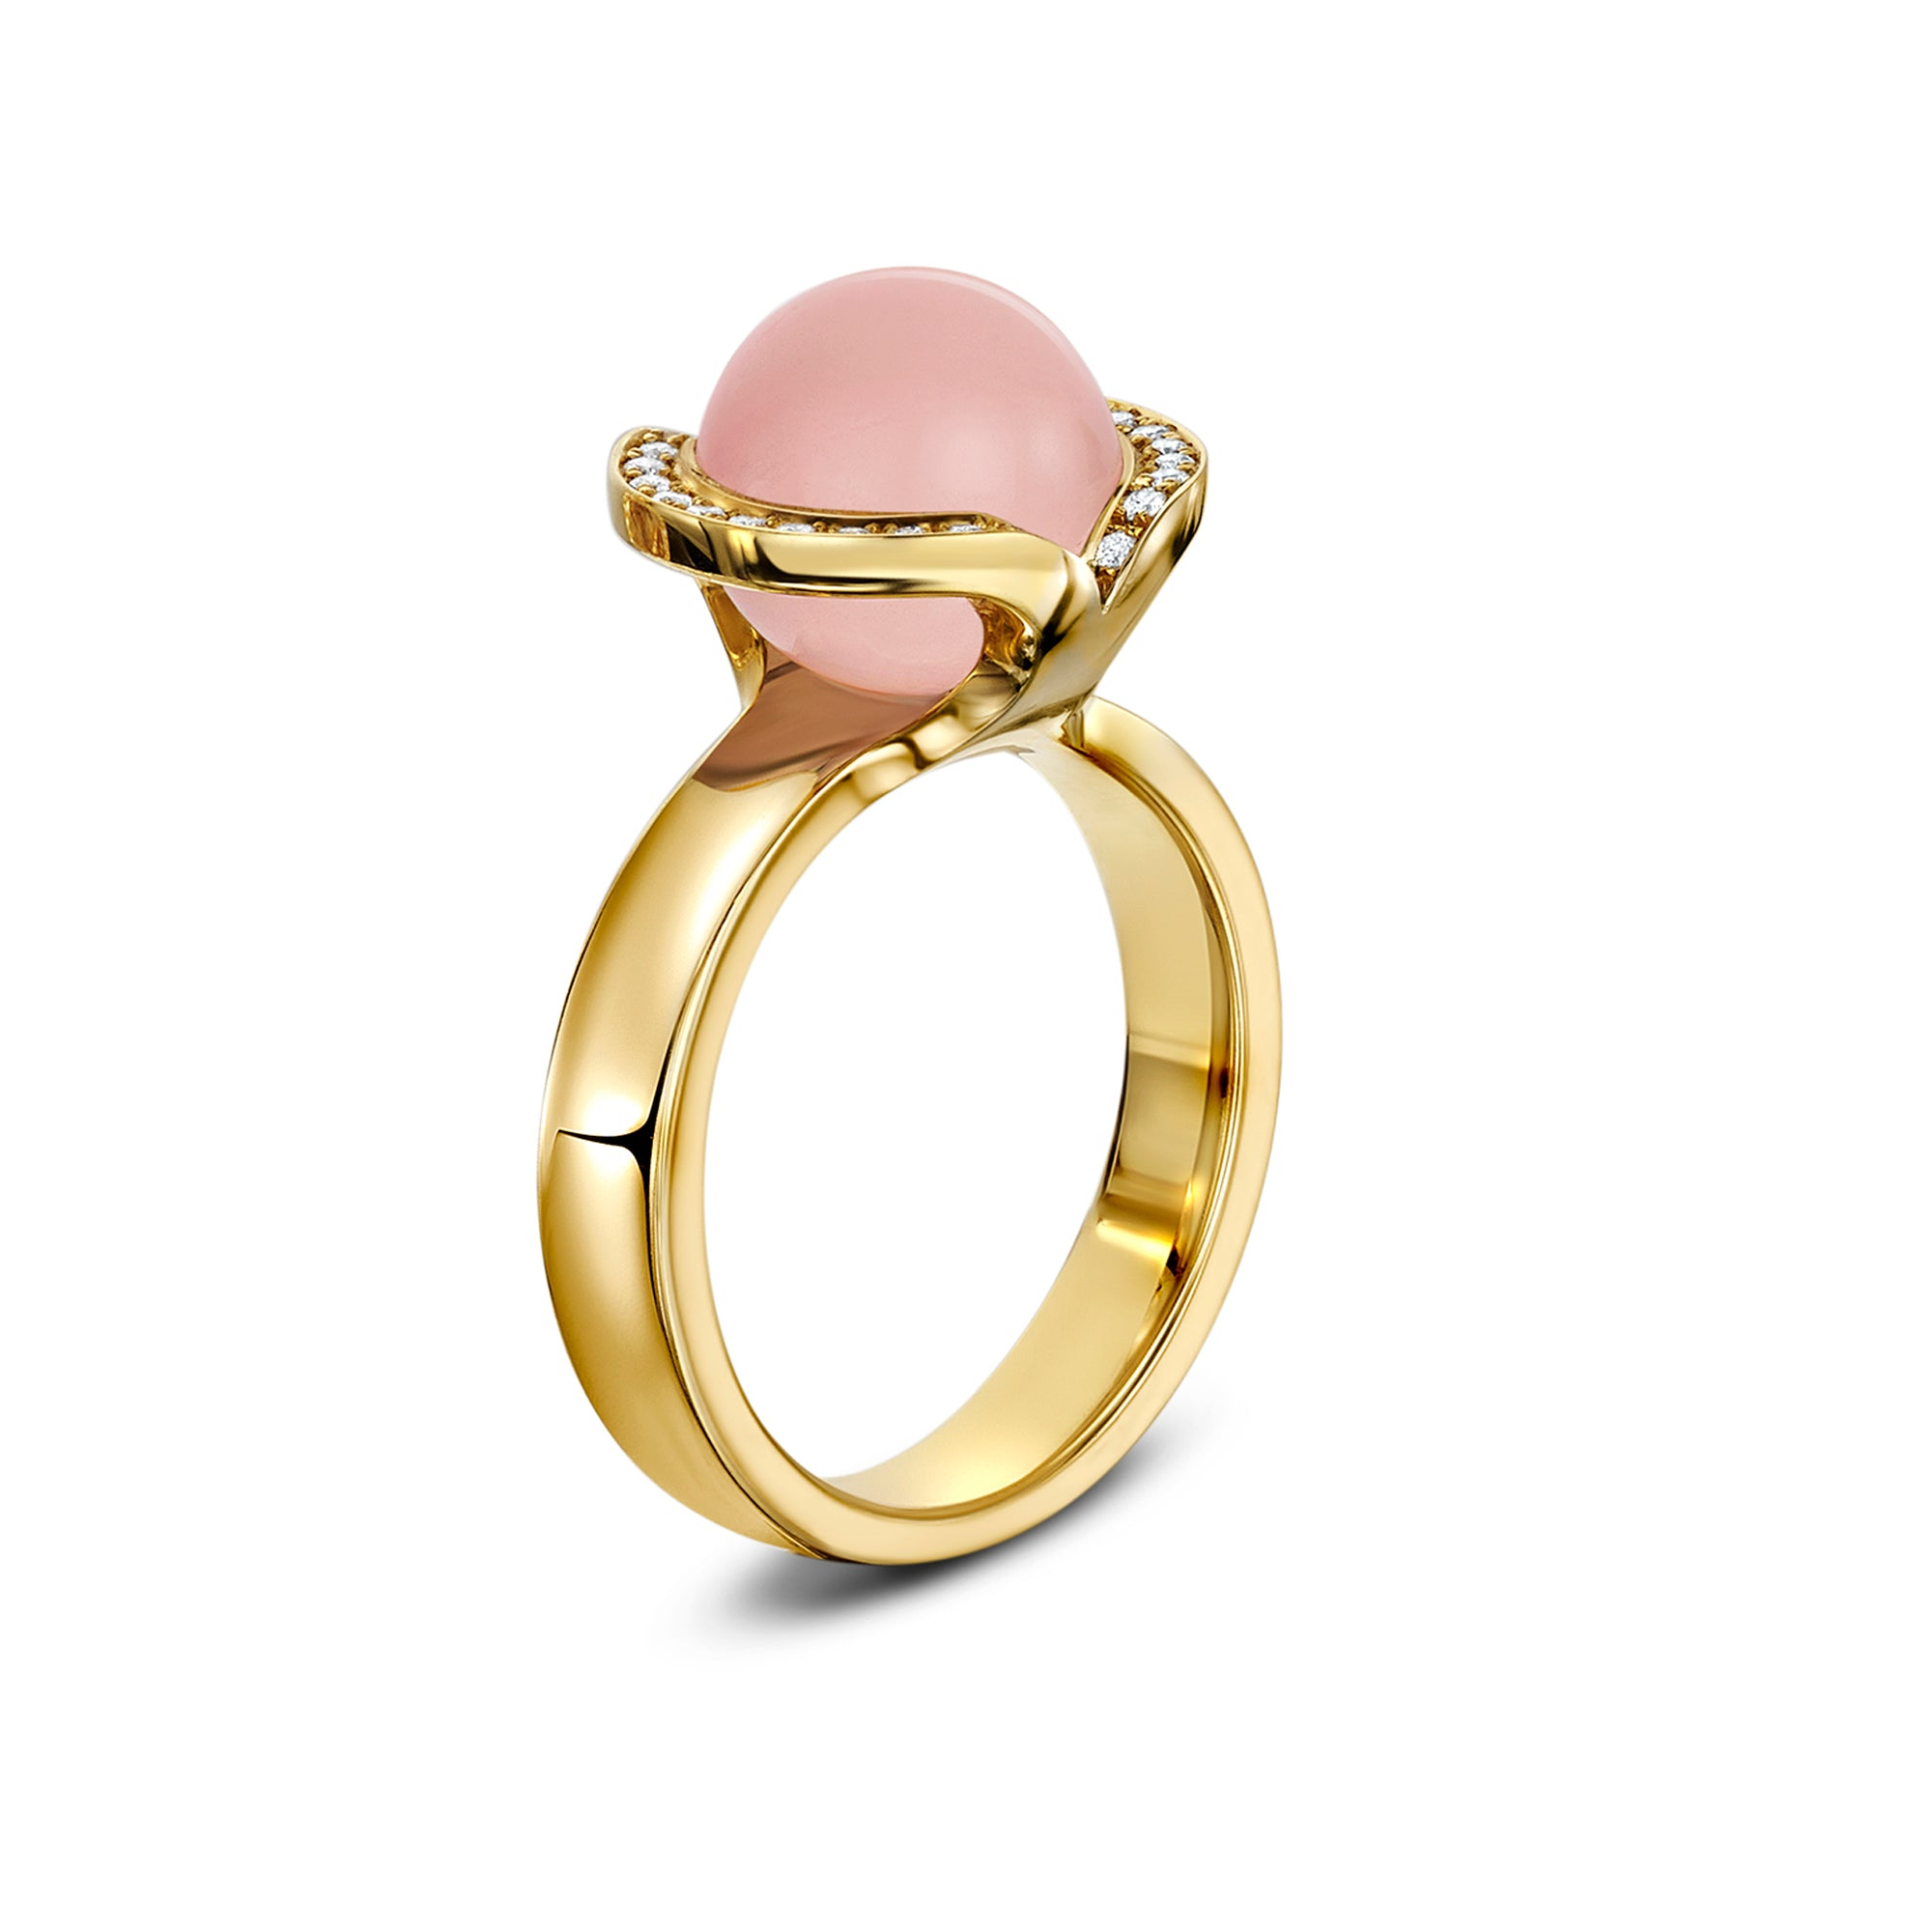 Celestial rose quartz ring